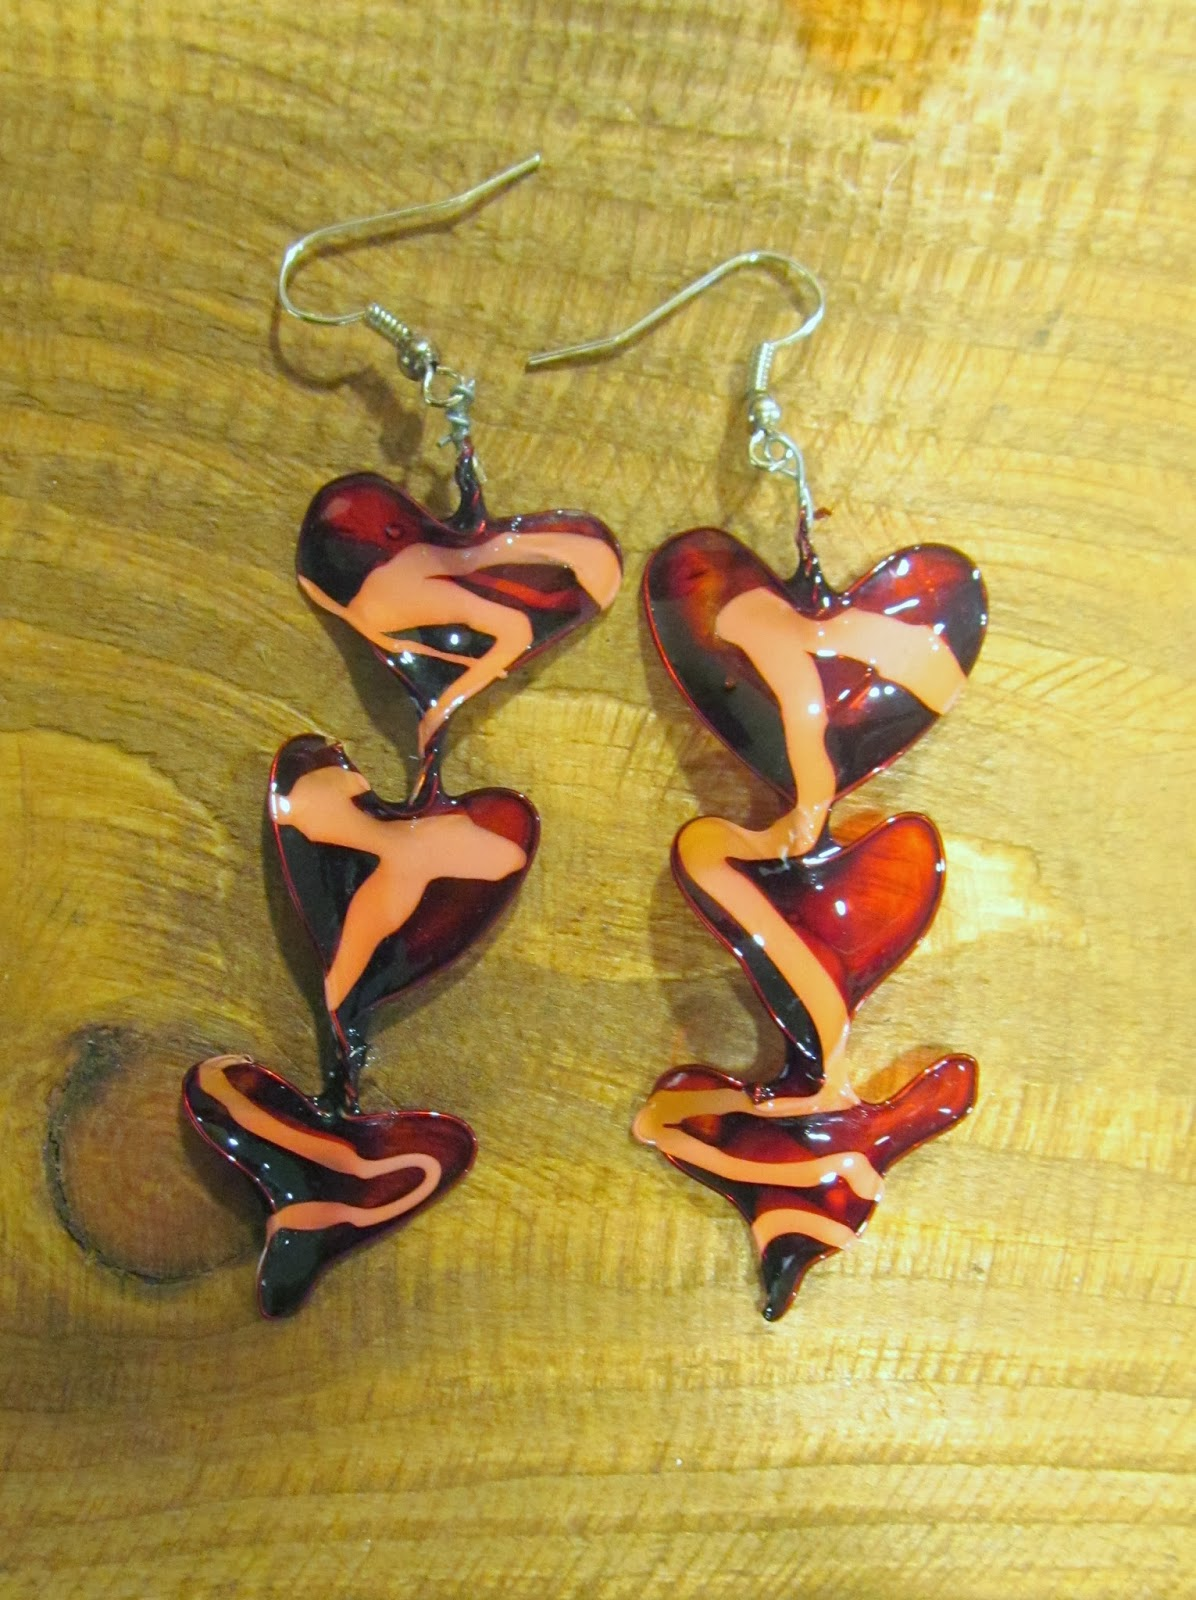 Earrings by Fantasy Trinkets at Bird's Yard, Sheffield